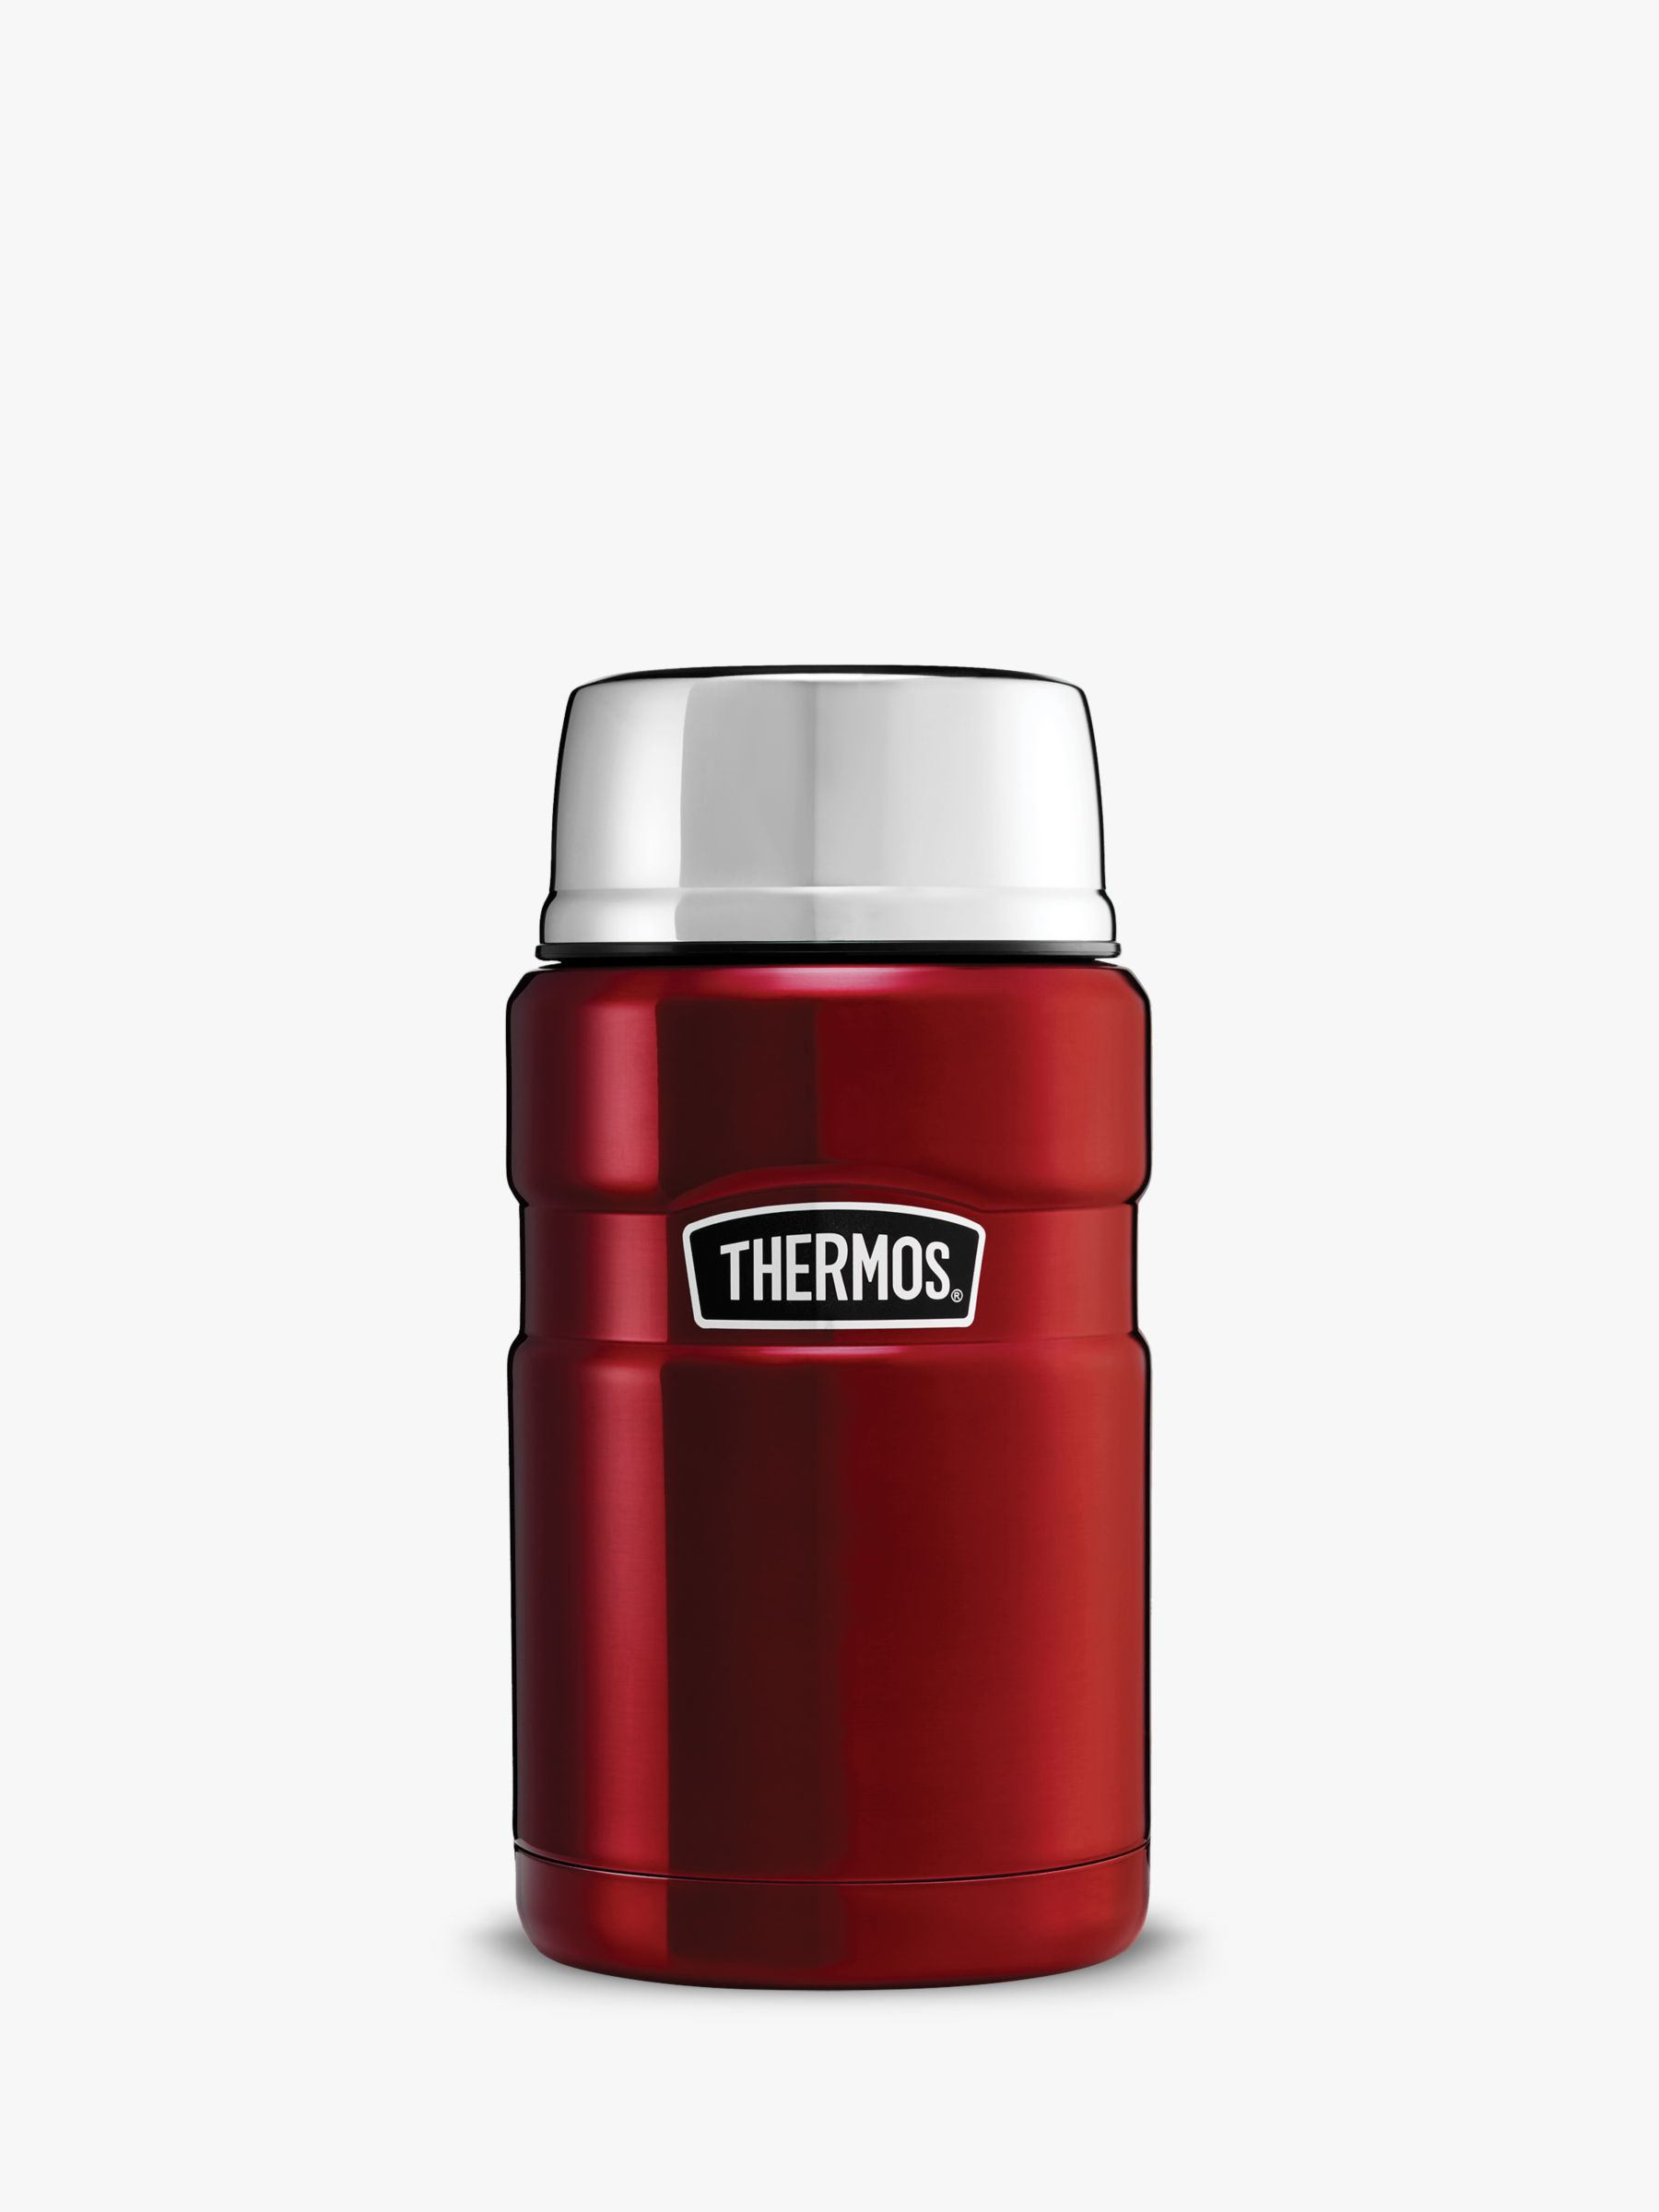 Thermos Thermos King Stainless Steel Food Flask, 710ml, Red